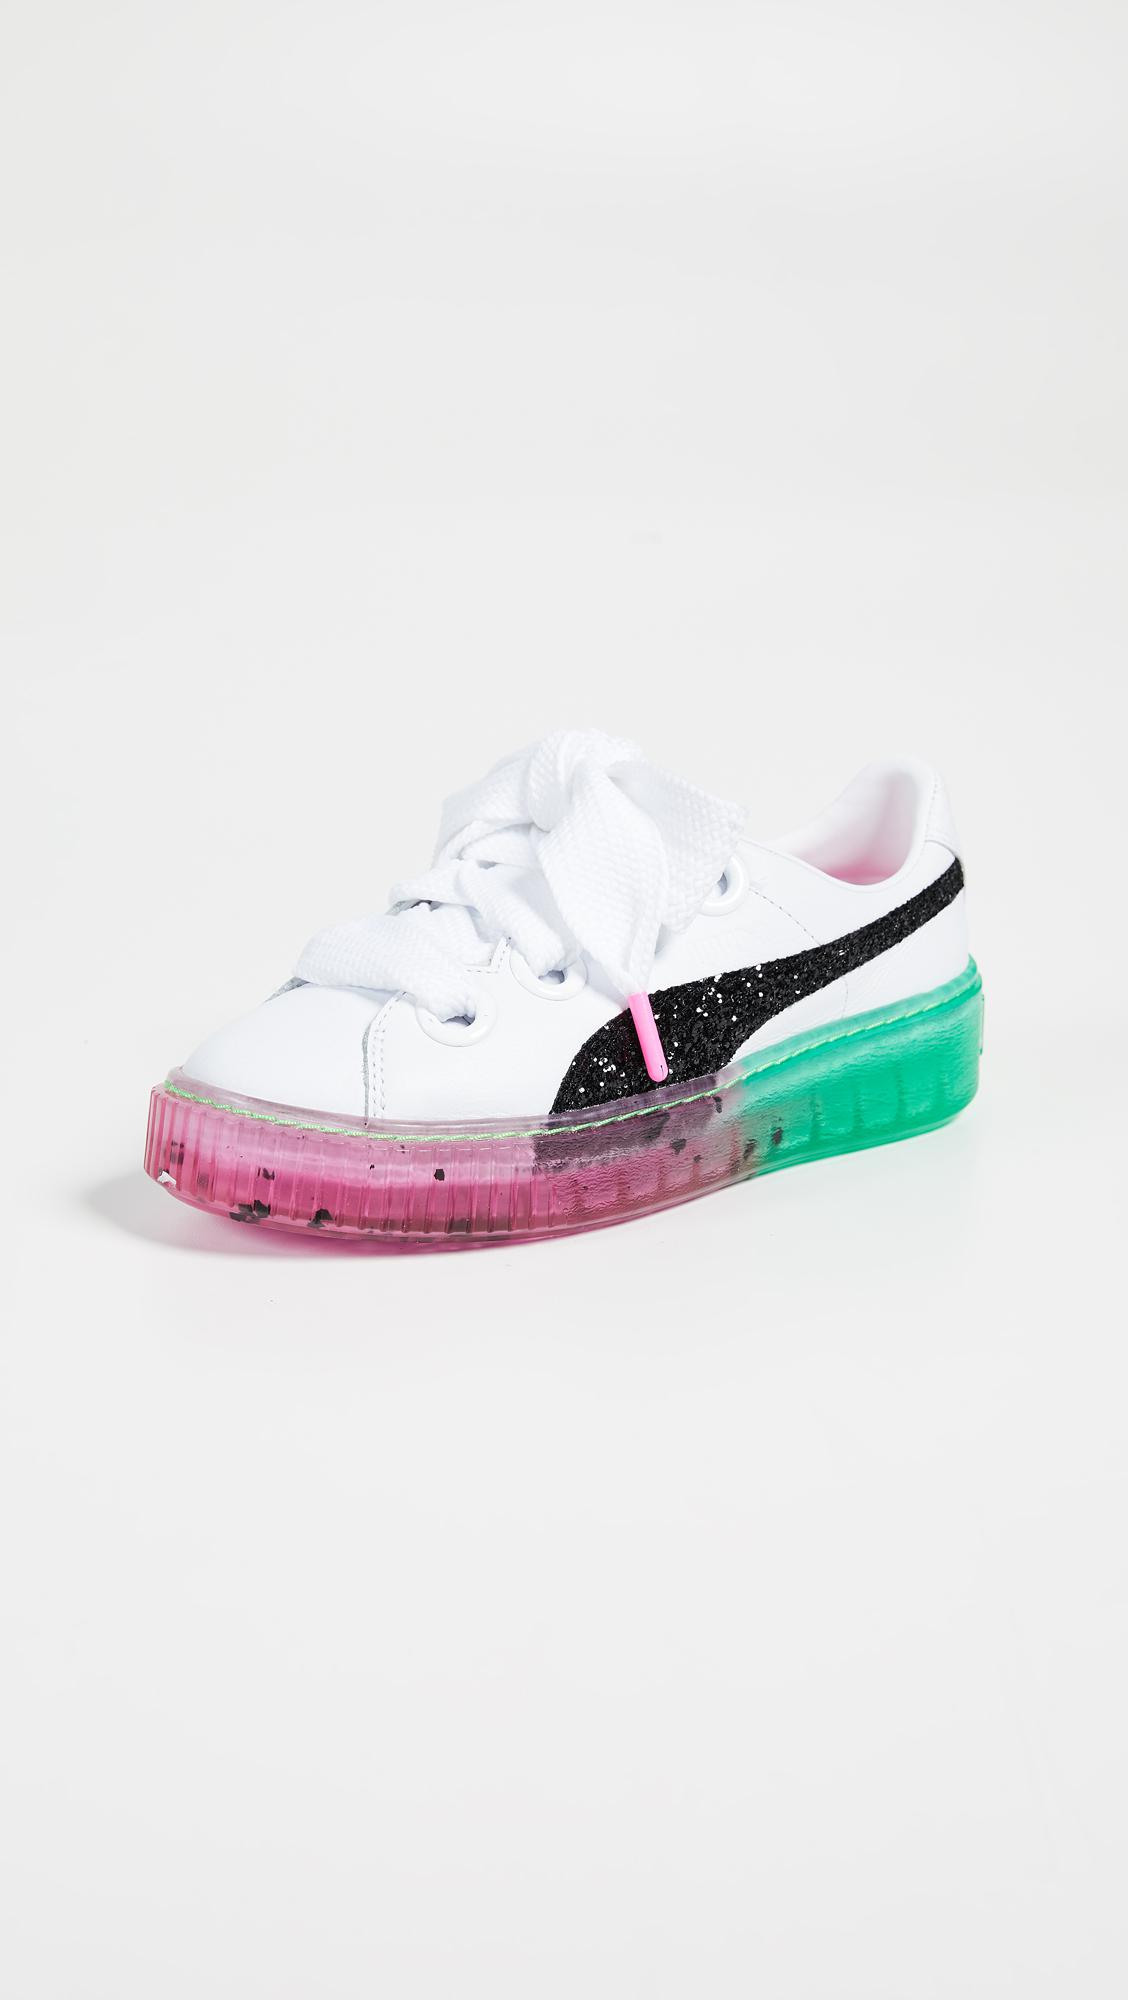 Puma X Sophia Webster Candy Princess Platform sneakers free shipping best seller countdown package for sale countdown package sale online JF7g9QC8FW